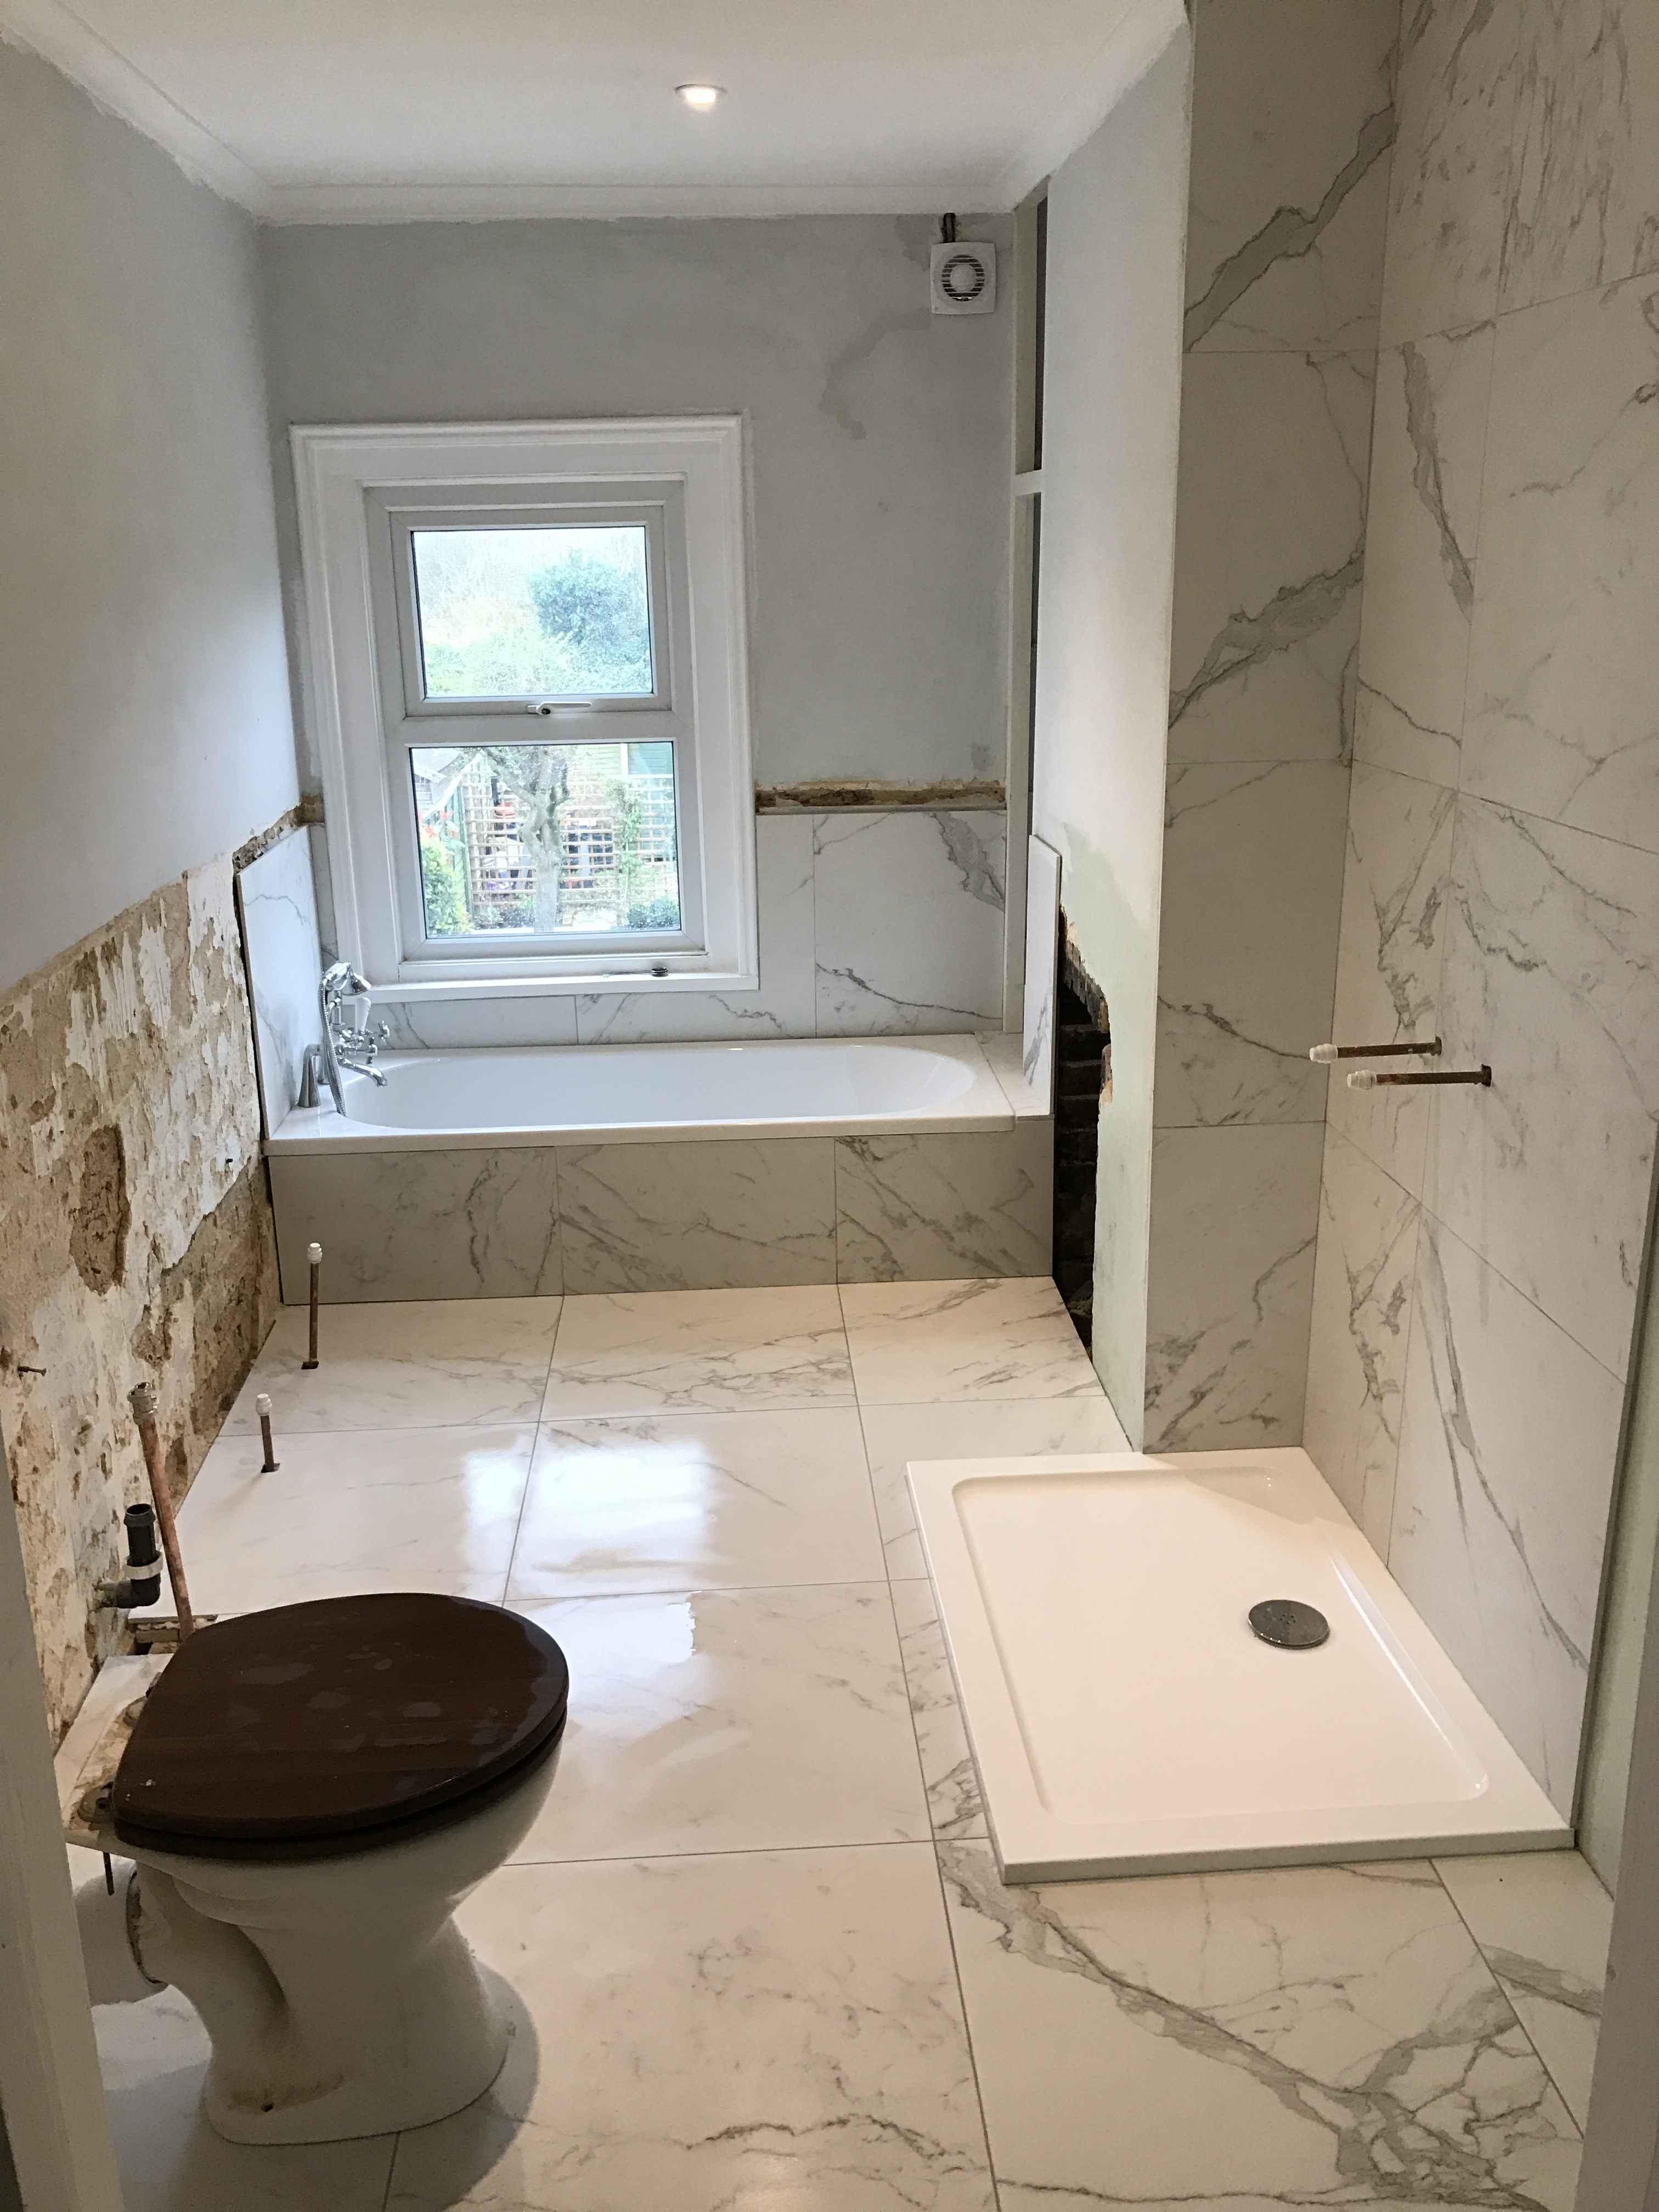 The goal was to create a boutique hotel style bathroom traditional with a contemporary twist. I wanted to see marble tiles and wooden panelling! & Creating Your Own Boutique Hotel Style Bathroom